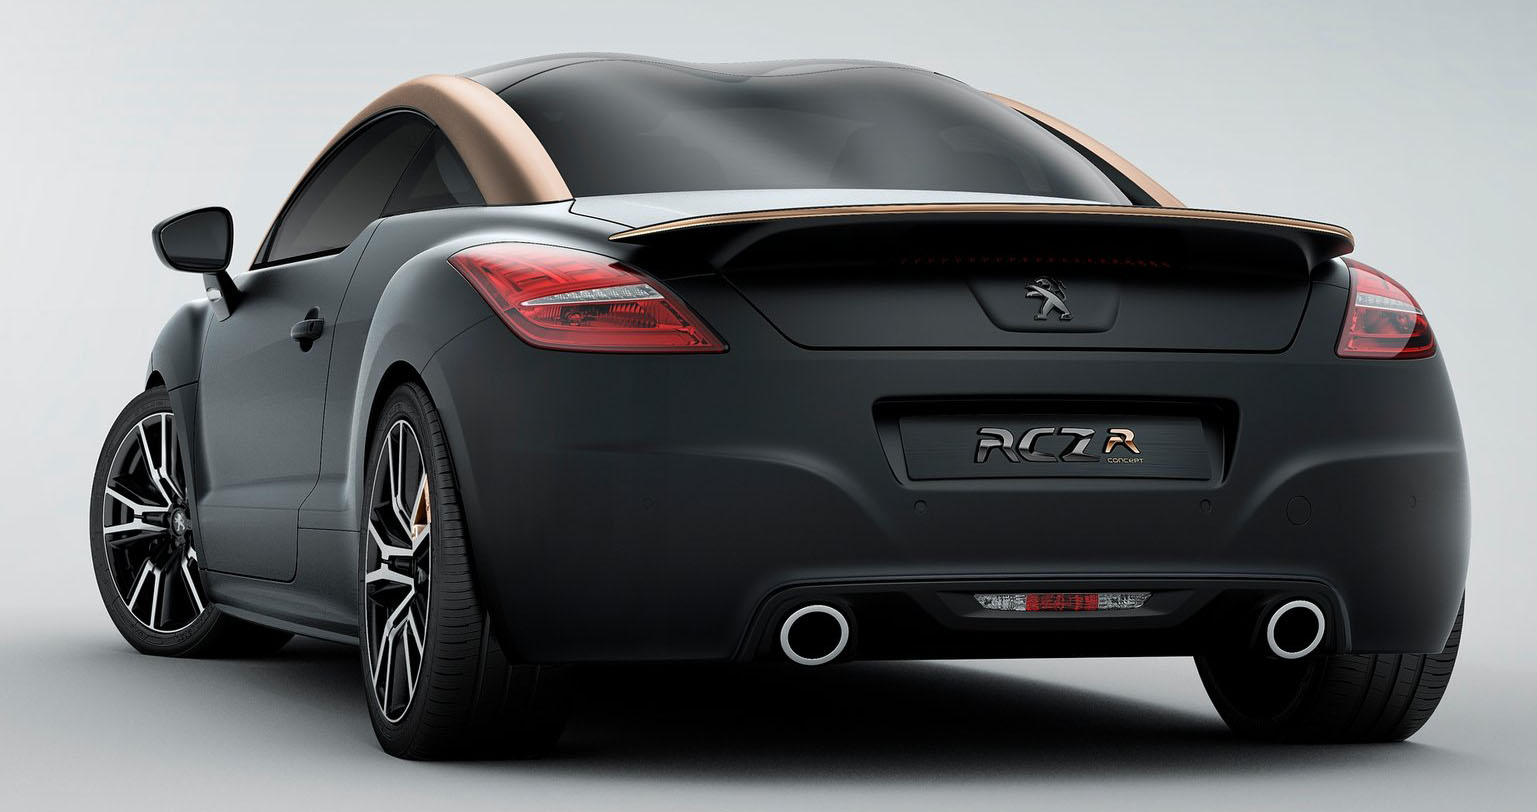 peugeot rcz r 260 hp most powerful pug yet image 130905